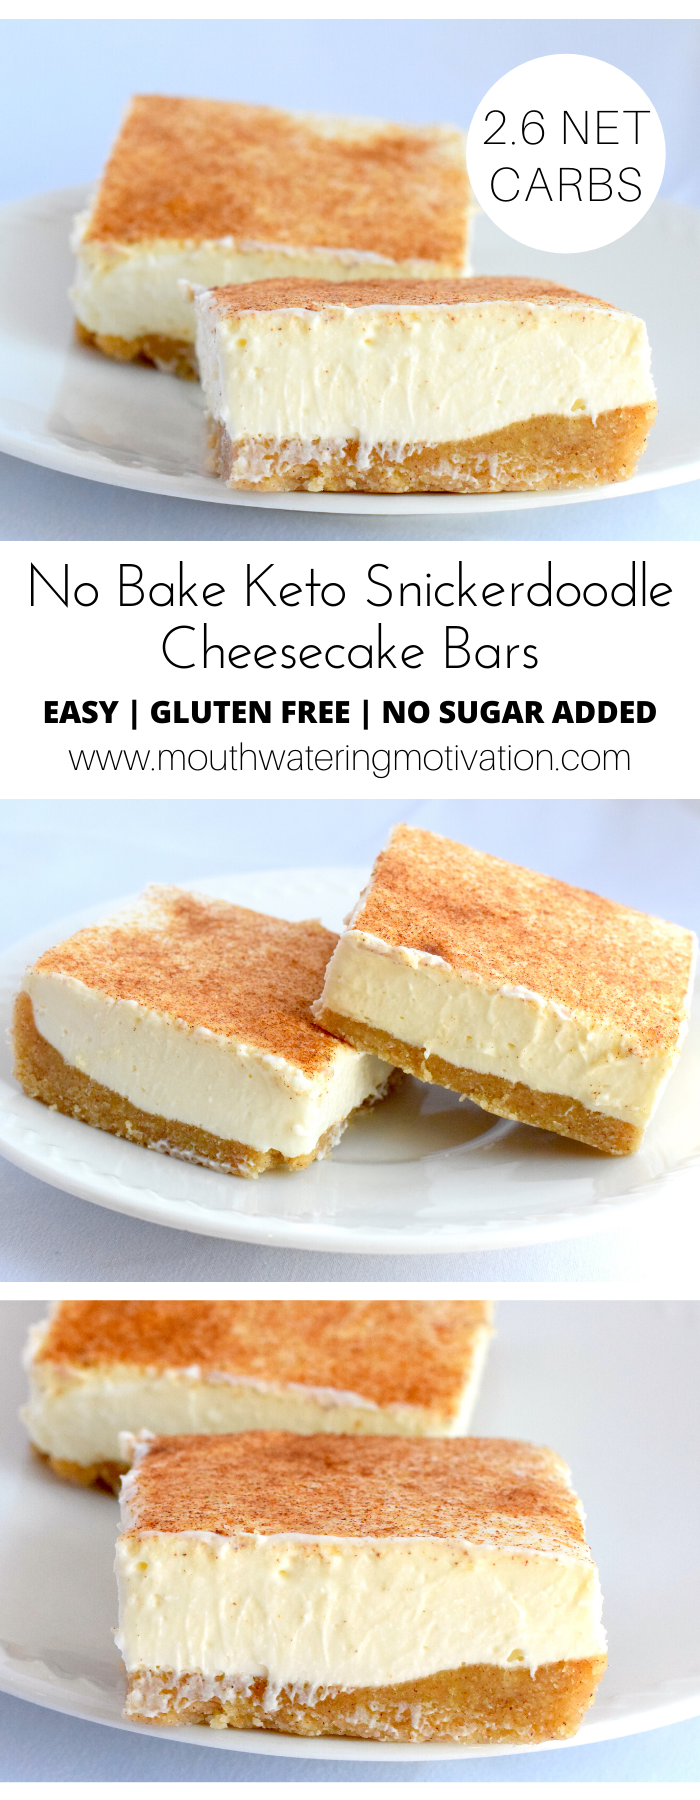 No Bake Keto Snickerdoodle Cheesecake Bars